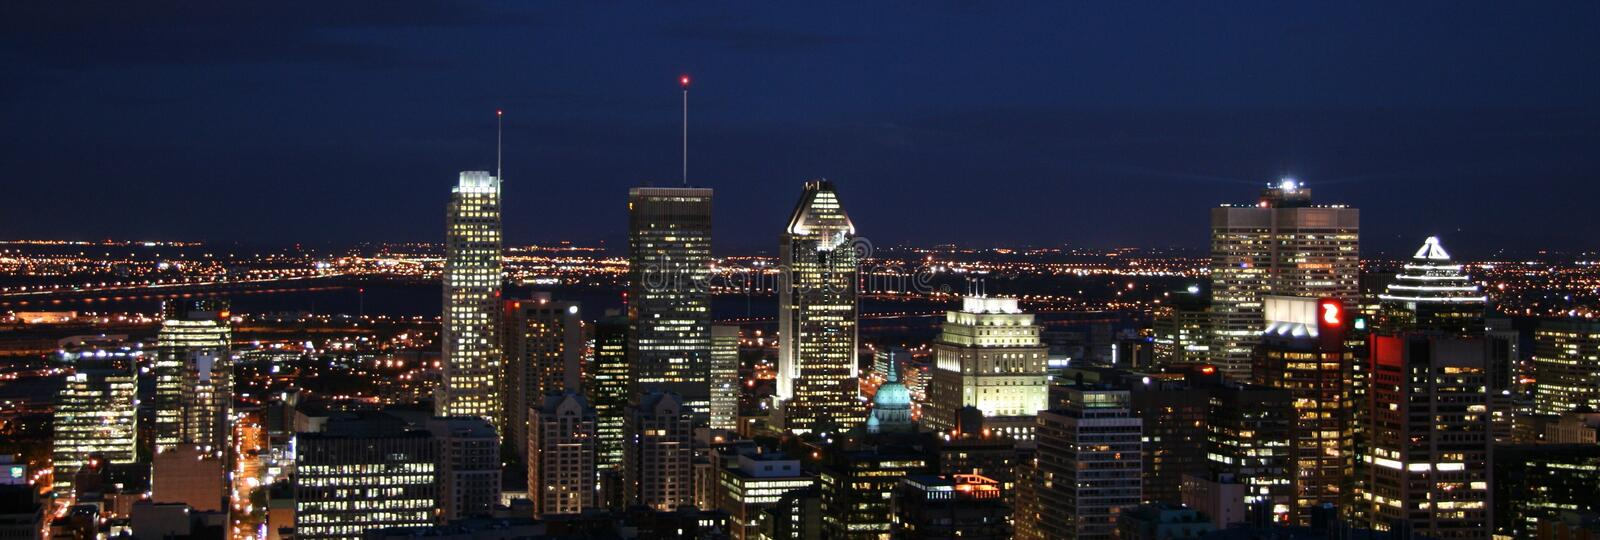 Cityscape montreal Canada Lights Skyline royalty-vrije stock foto